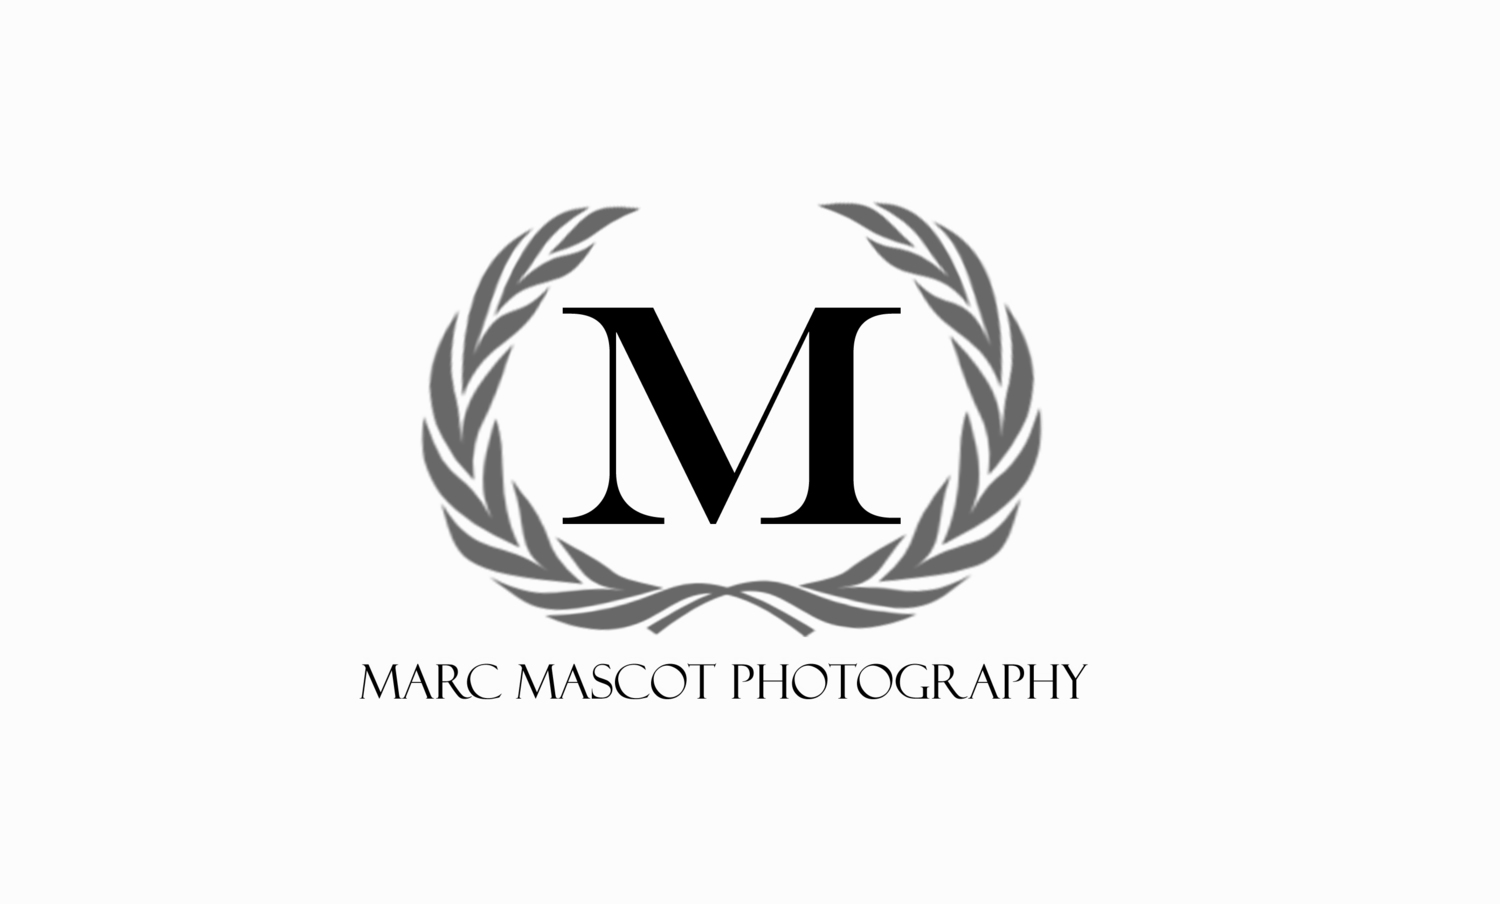 Marc Mascot Photography